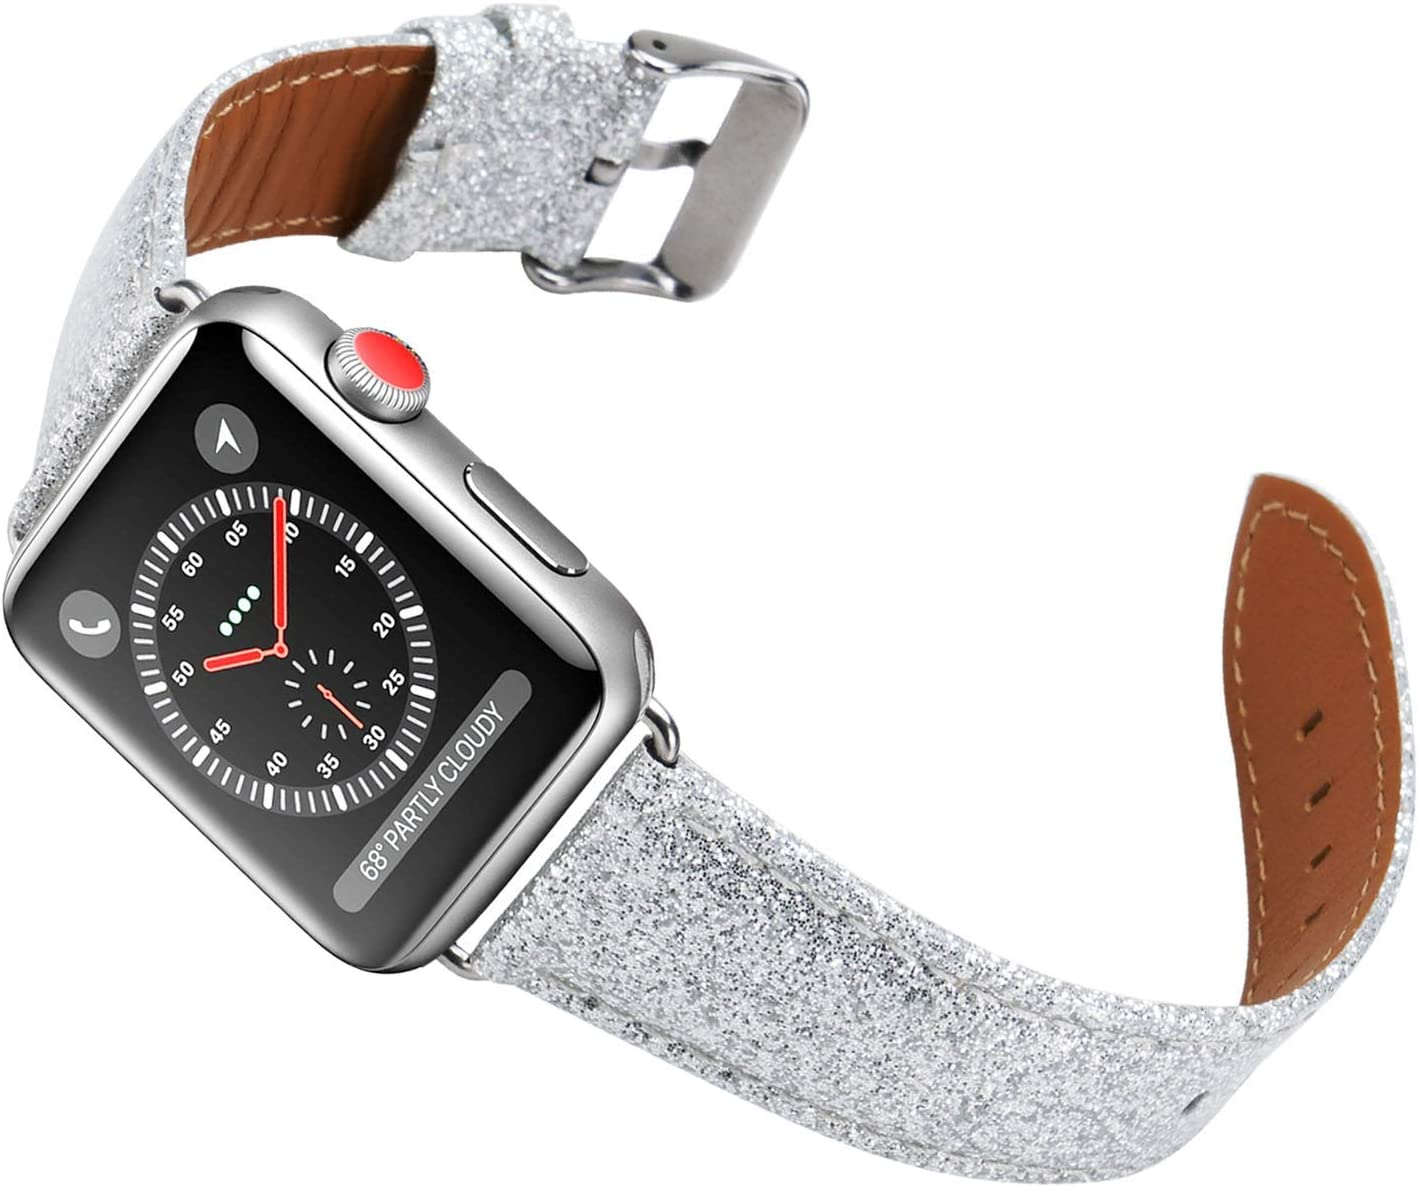 ALADRS Bling Leather Watch Straps Compatible with Glitter Apple Watch Band 38mm 40mm, Shiny Sparkly Wristbands Replacement for iWatch Series 6 5 4, SE (40mm) Series 3 2 1 (38mm), Silver